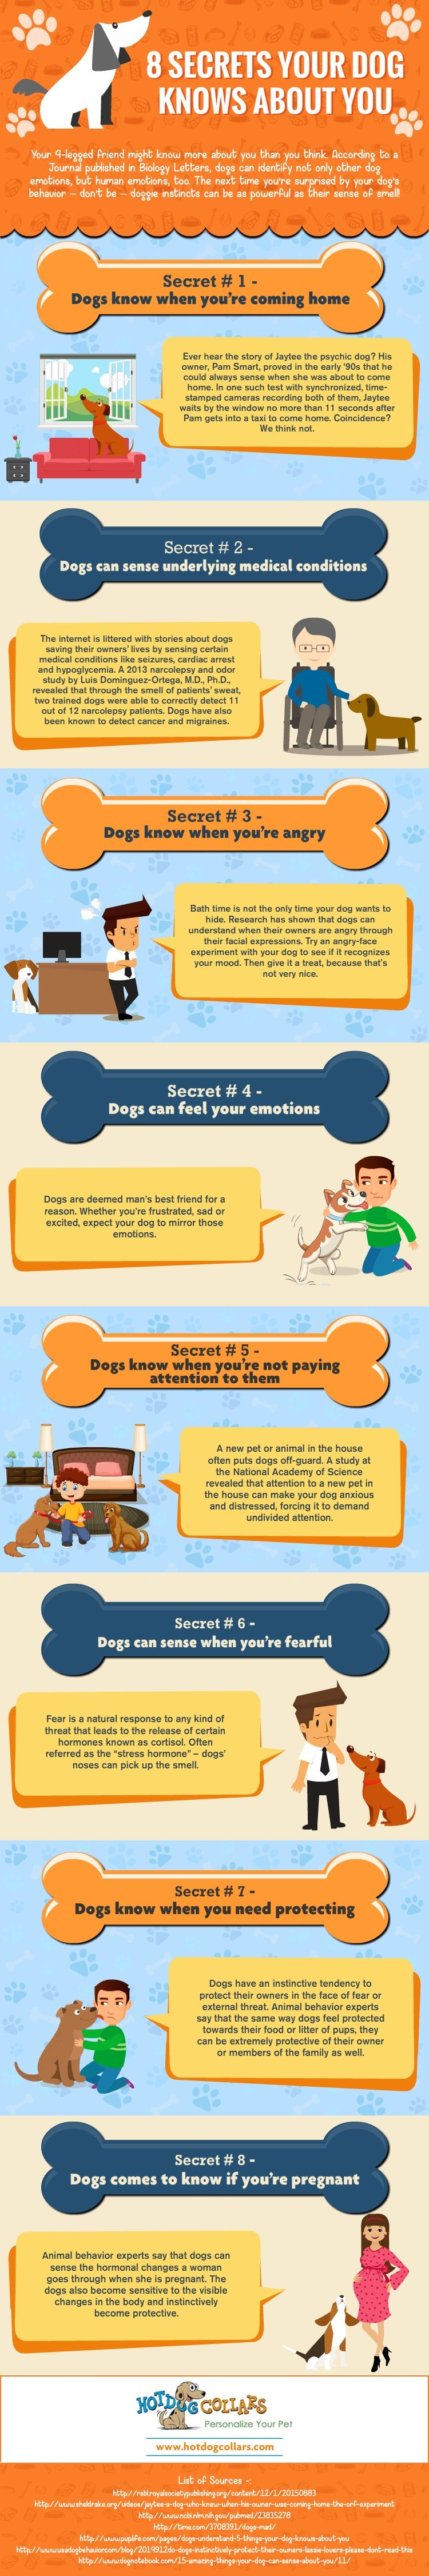 Secret Dog Infographic